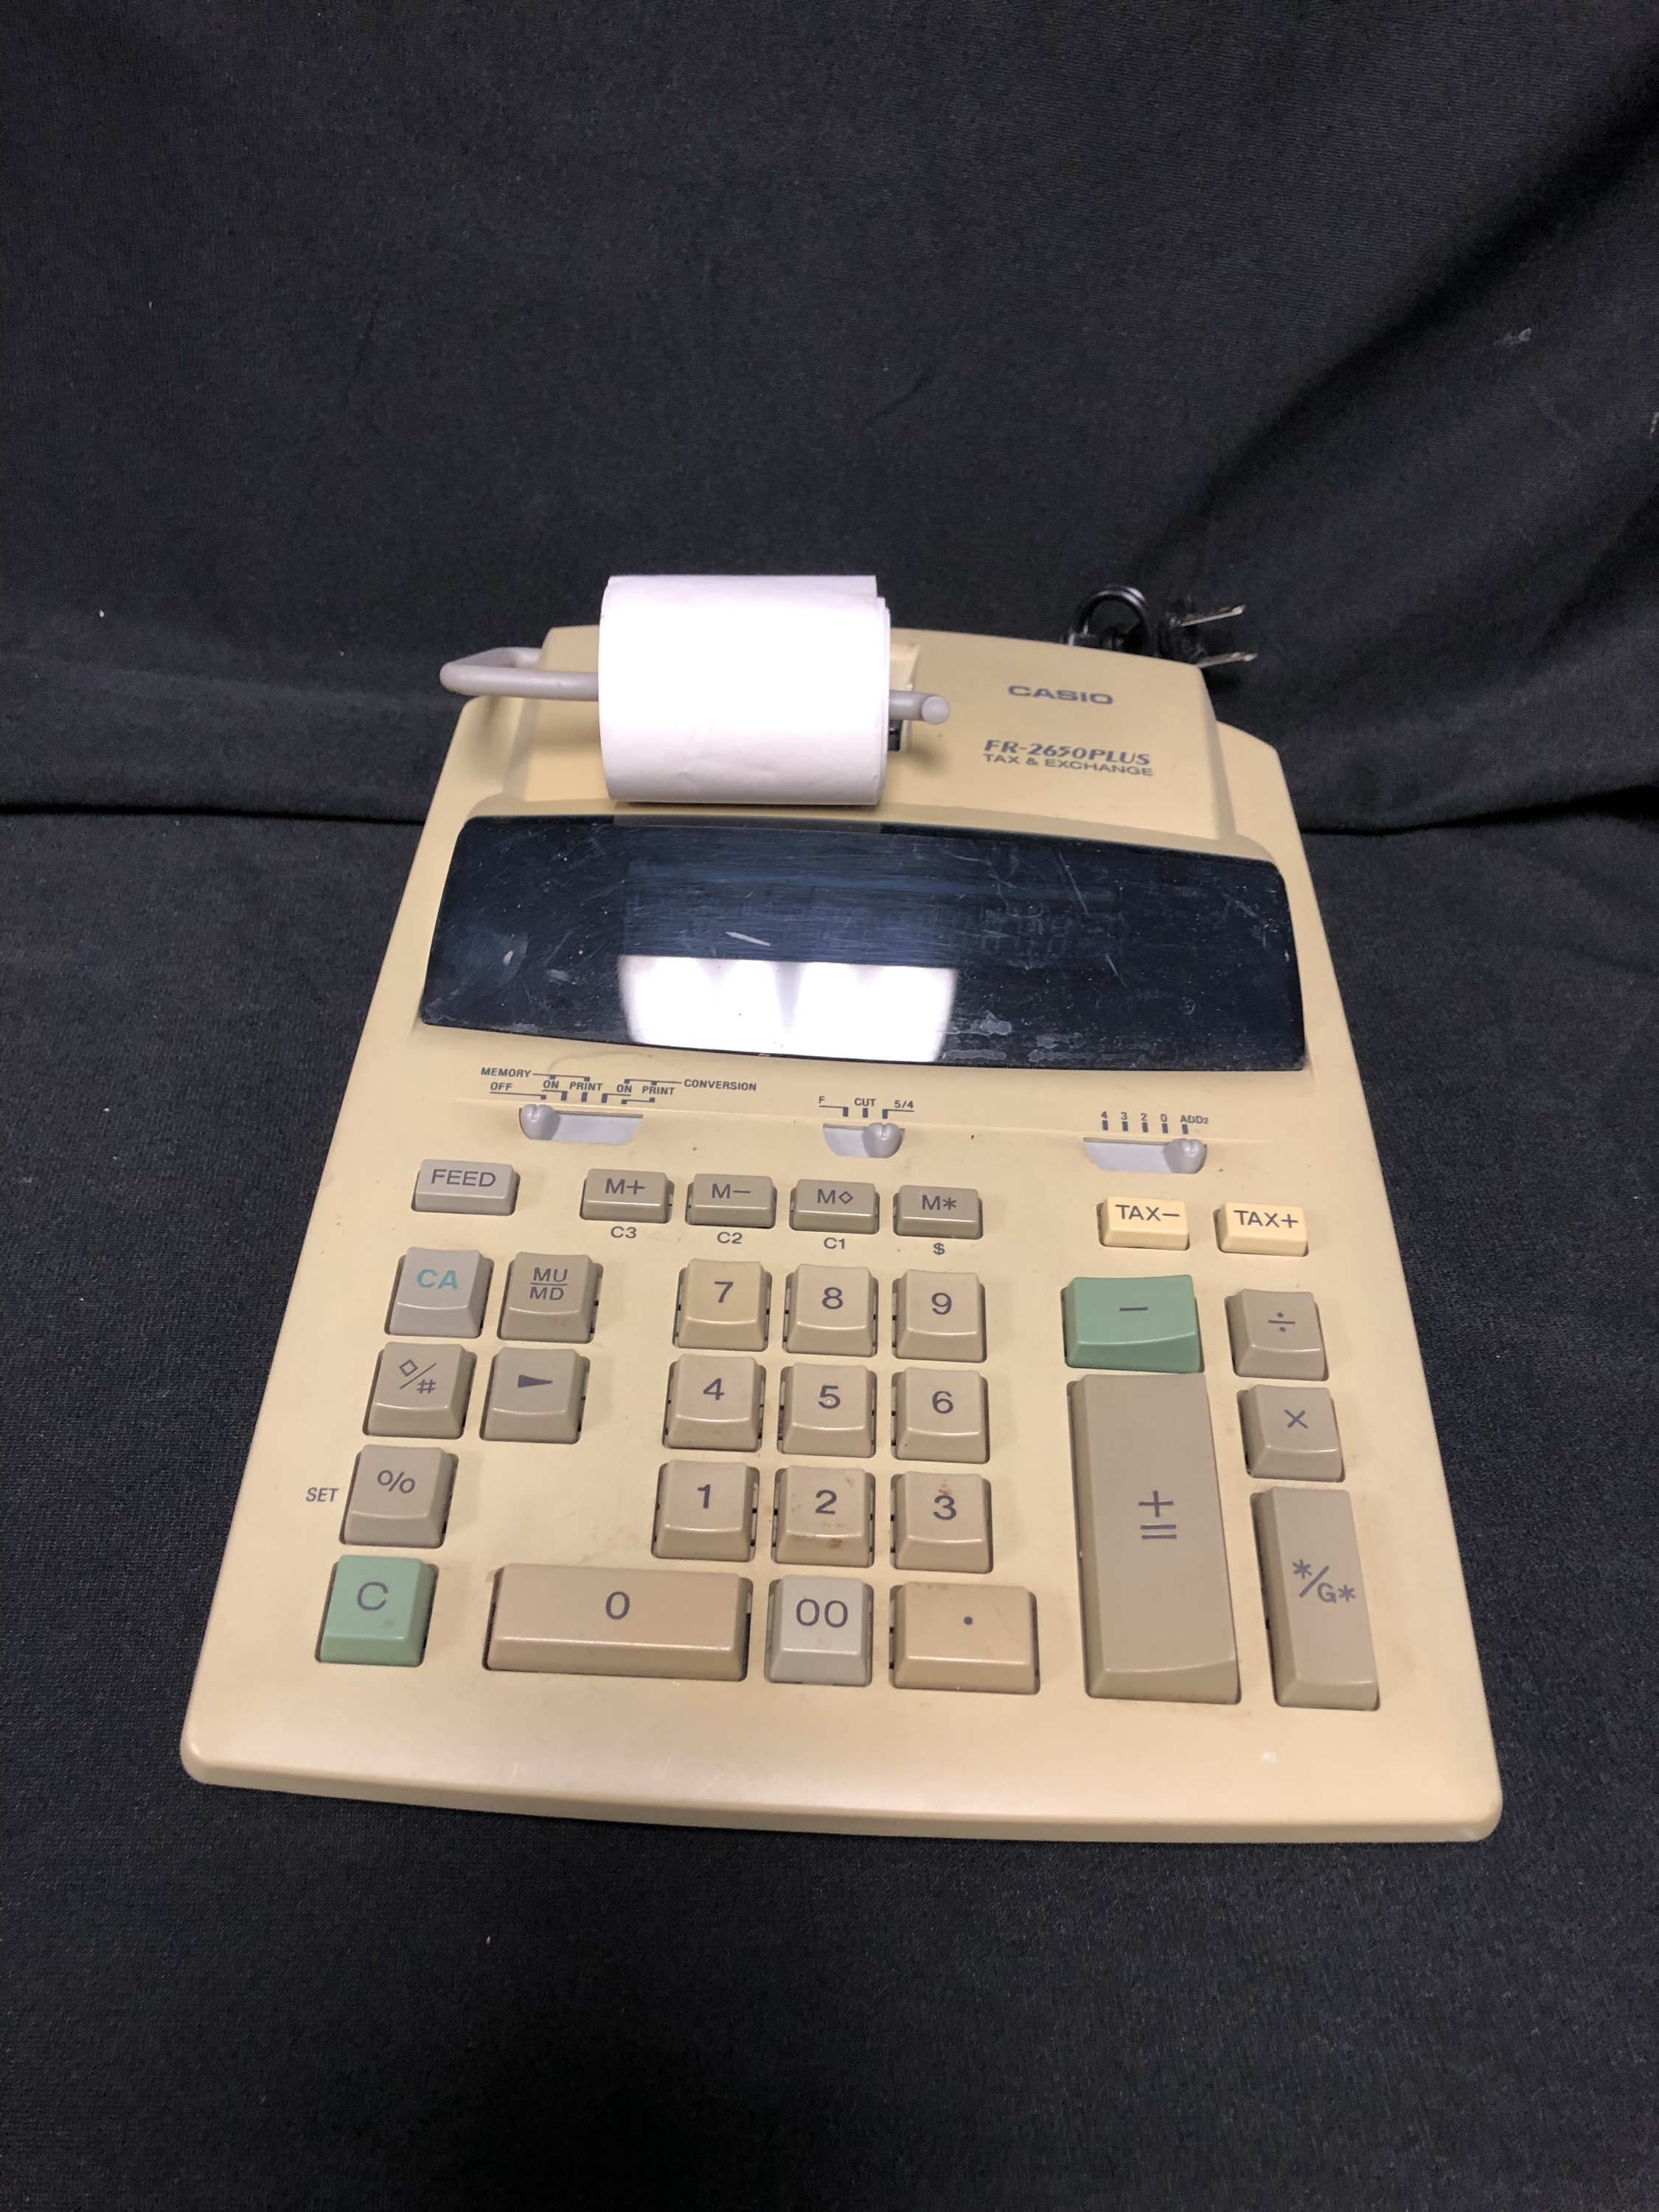 Adding Machine Printing Calculator